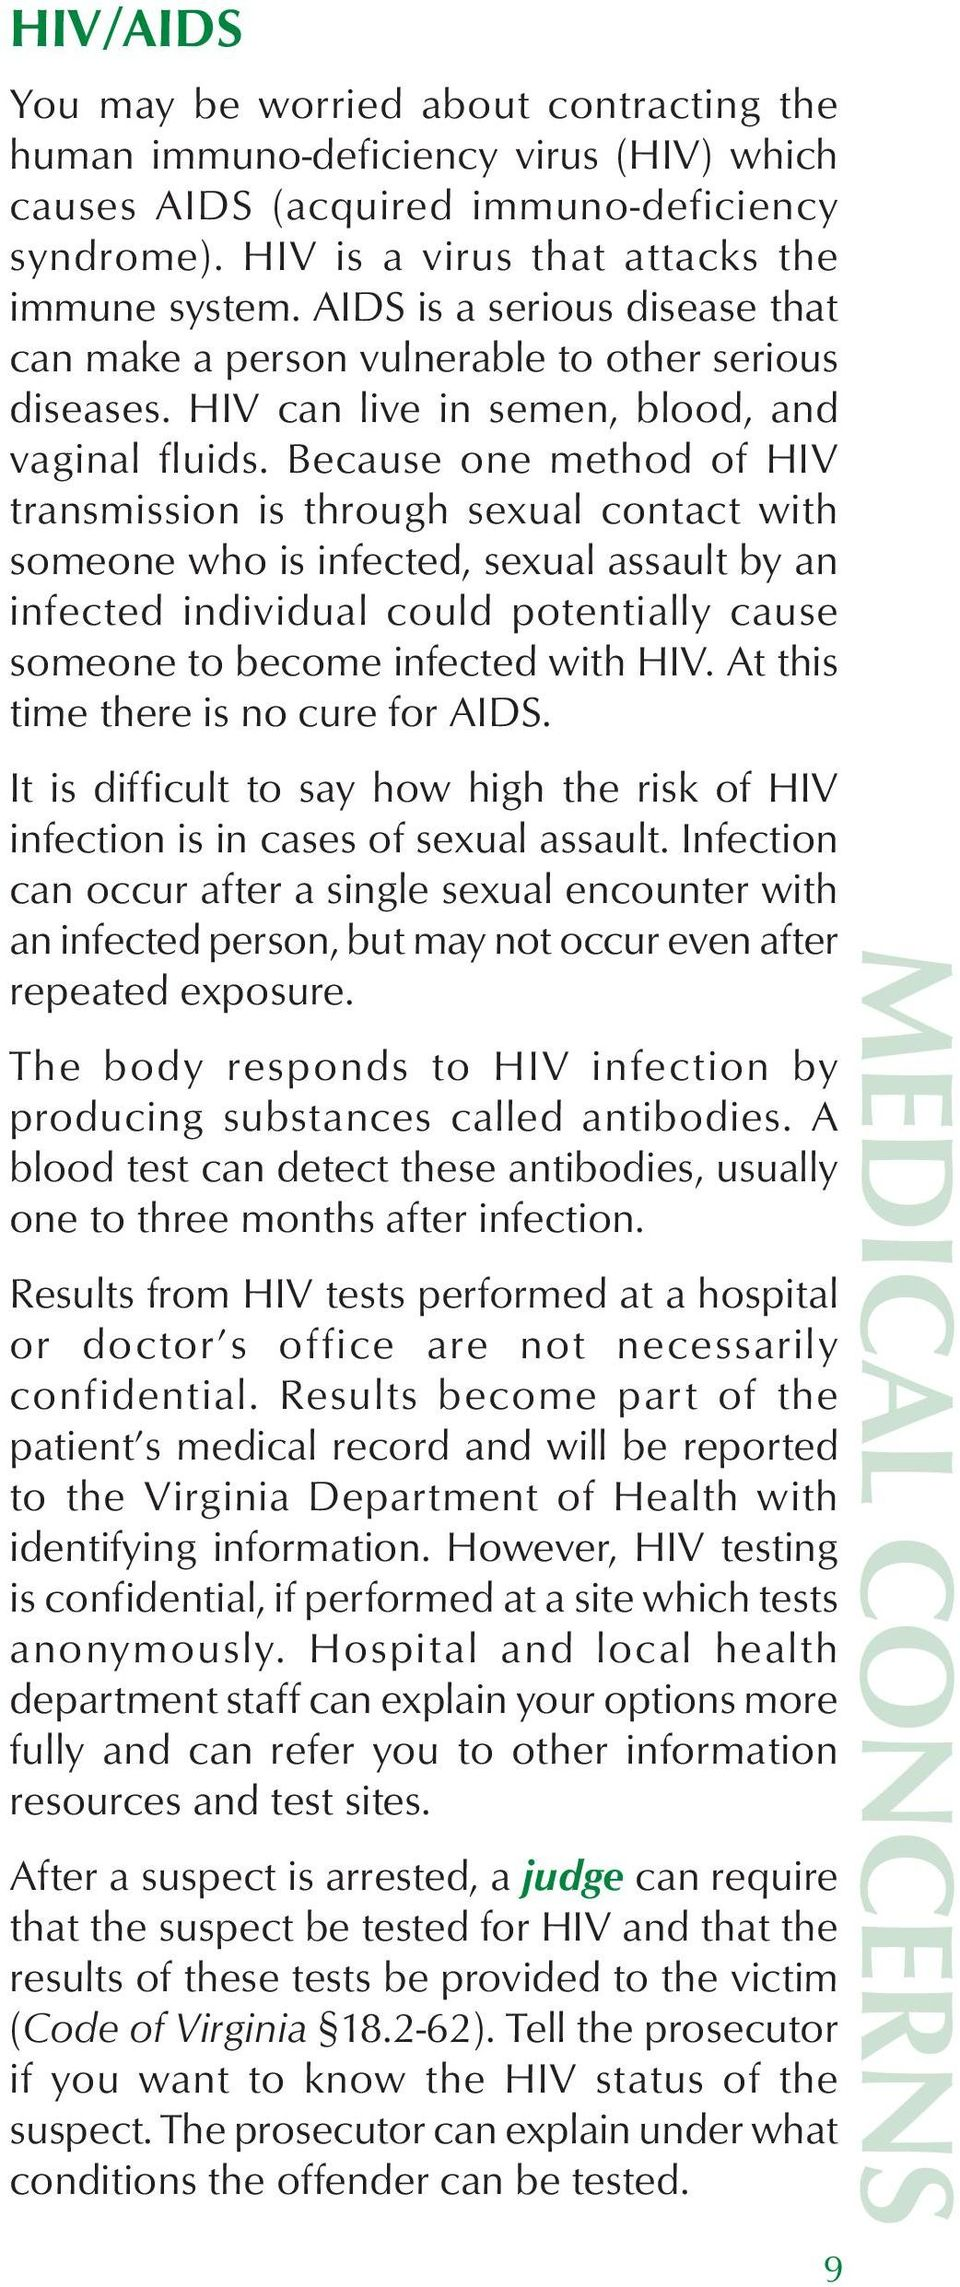 Because one method of HIV transmission is through sexual contact with someone who is infected, sexual assault by an infected individual could potentially cause someone to become infected with HIV.